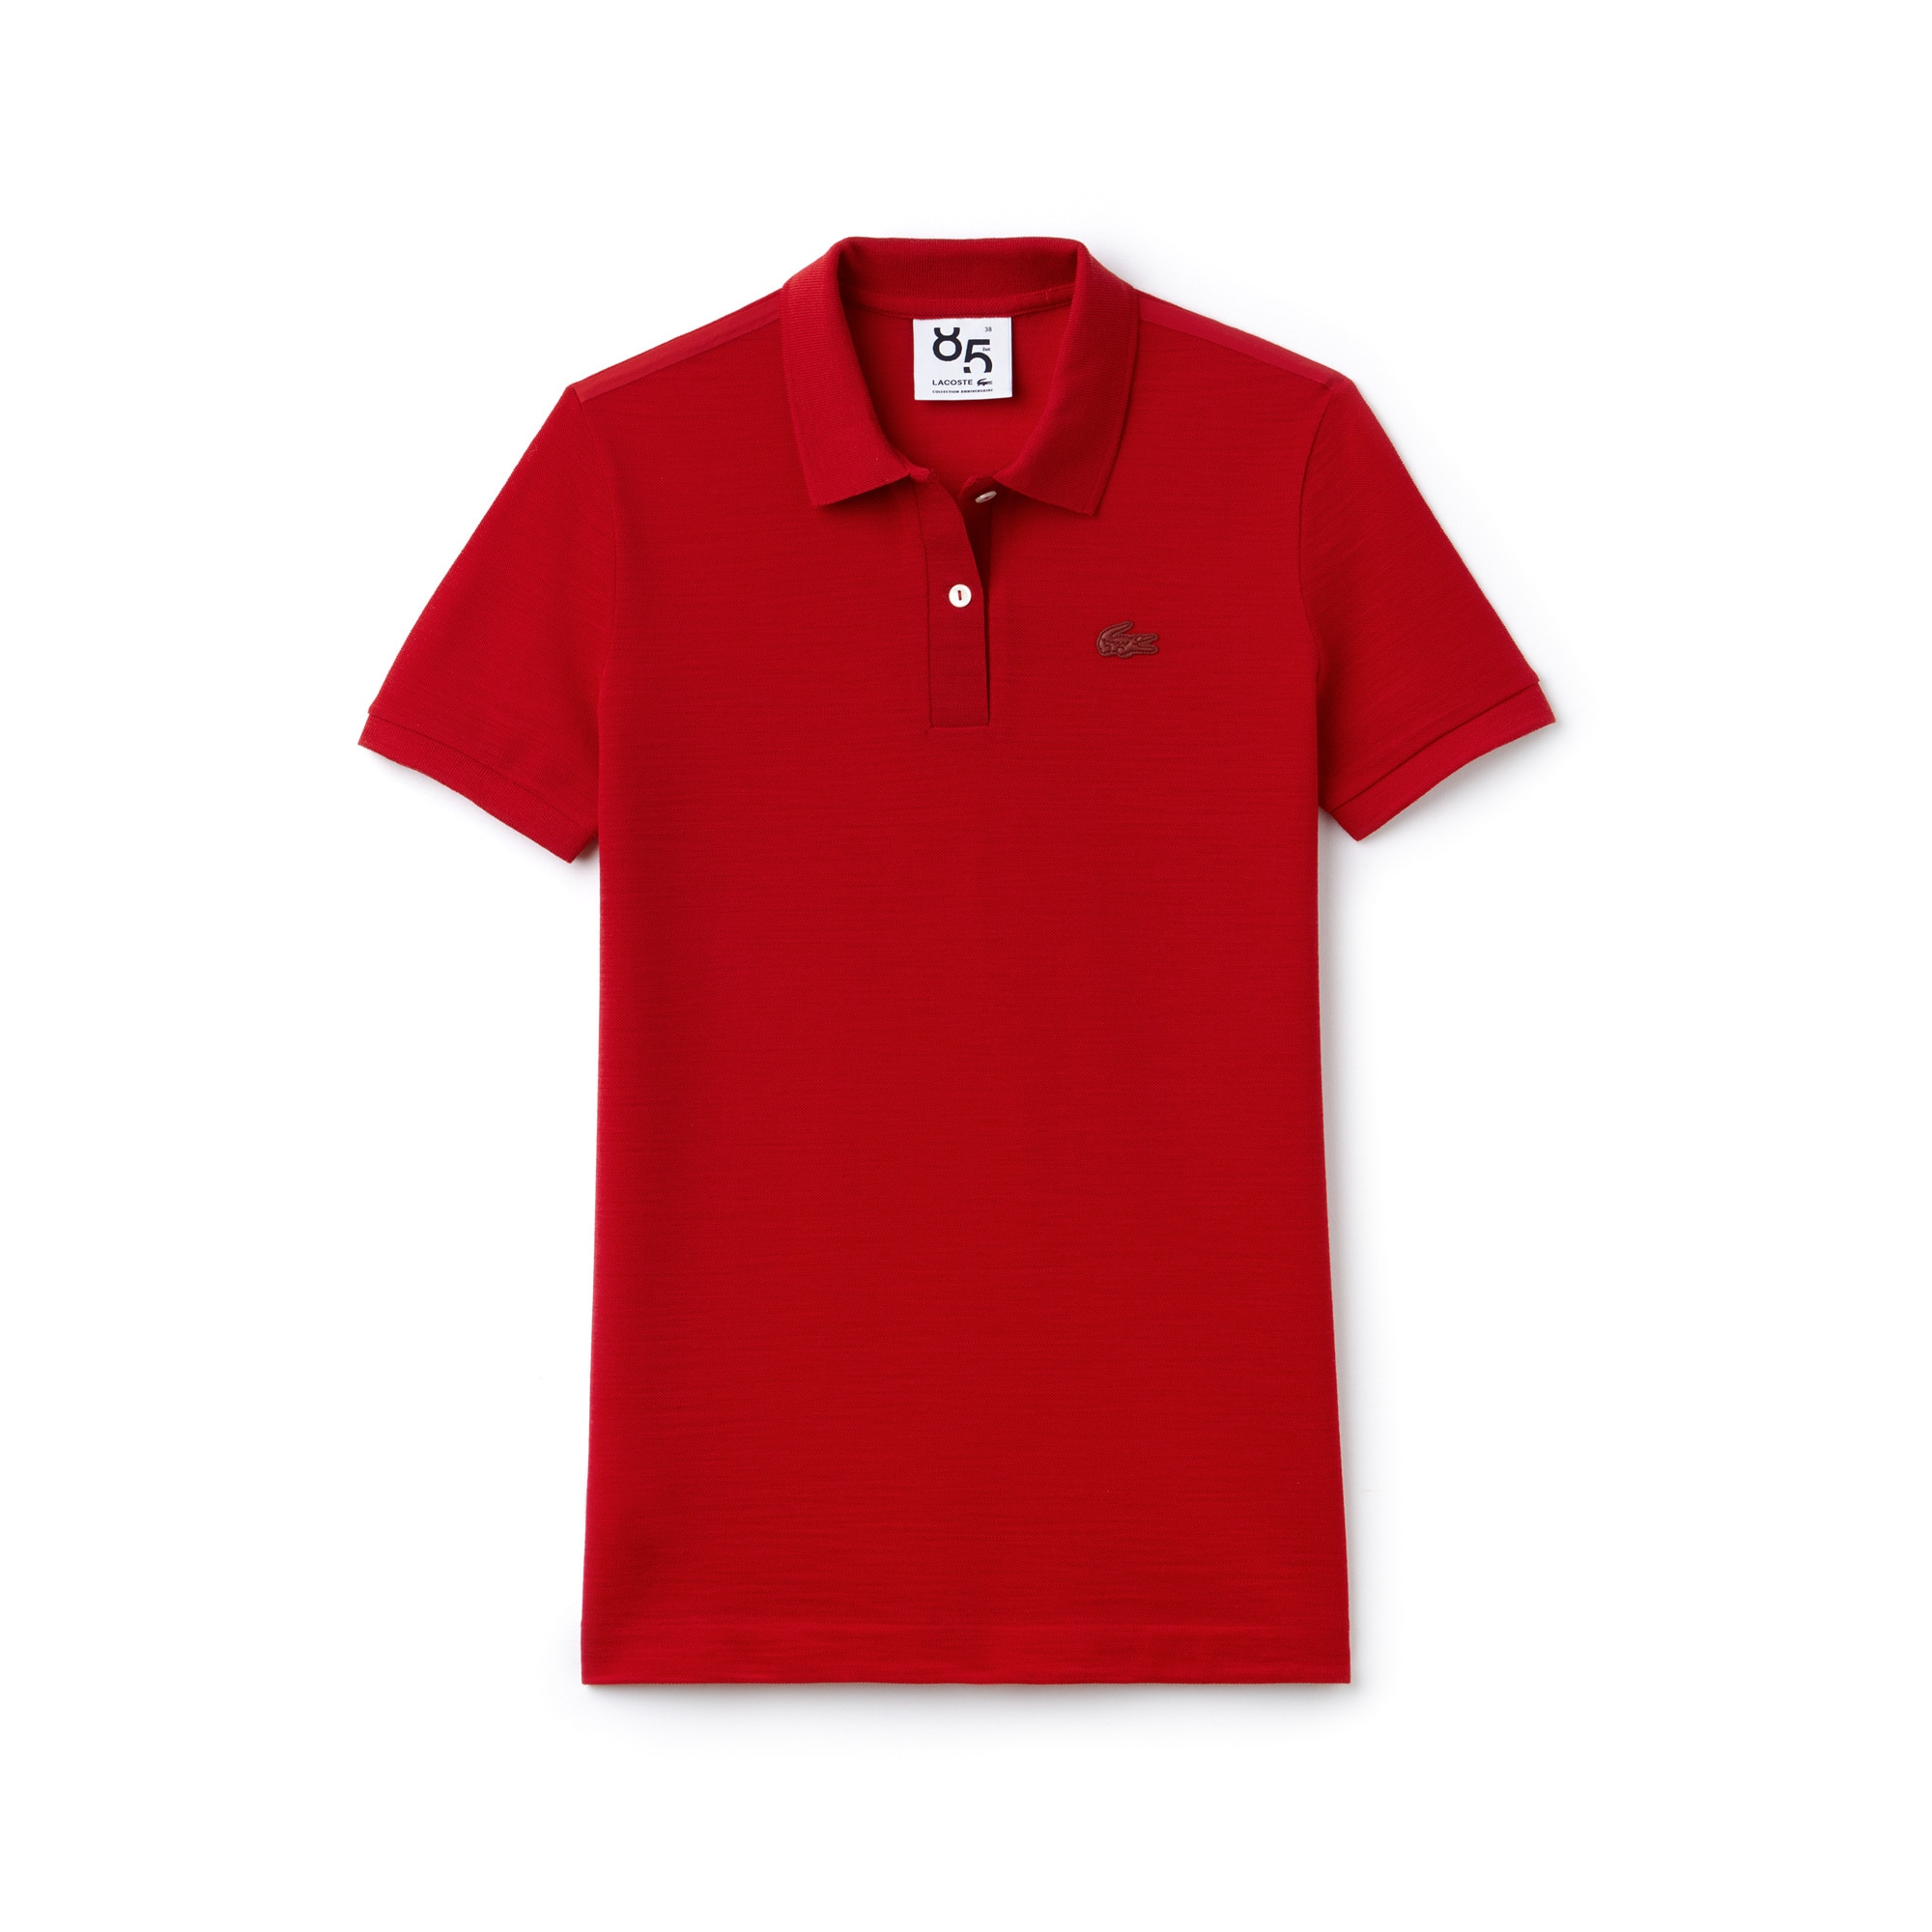 Women's Lacoste 85th Anniversary Limited Edition Classic Fit Wool Piqué Polo Shirt